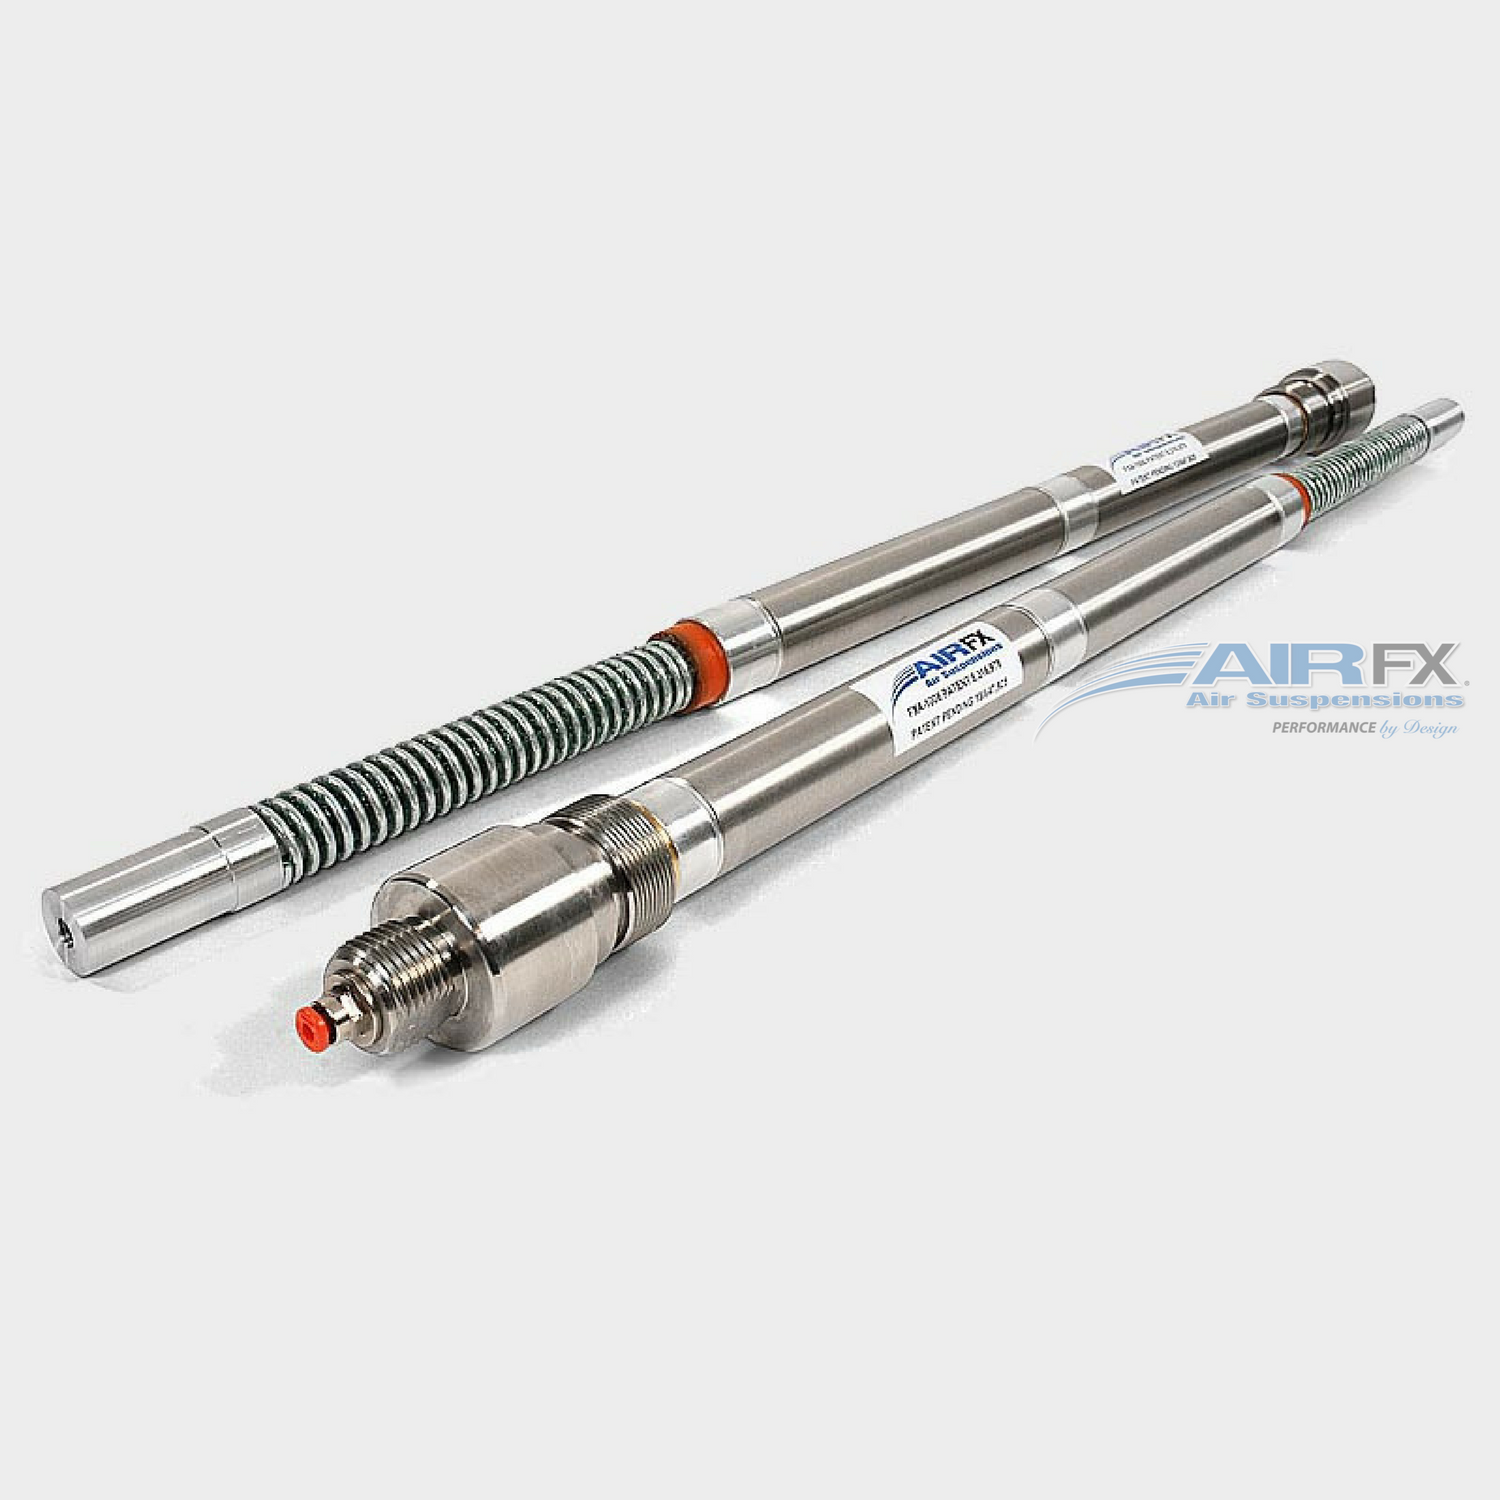 41mm Front Cartridge Pair with HHI for 30''/32'' wheel short neck (FXA-2016-3S) [+$1,370.00]